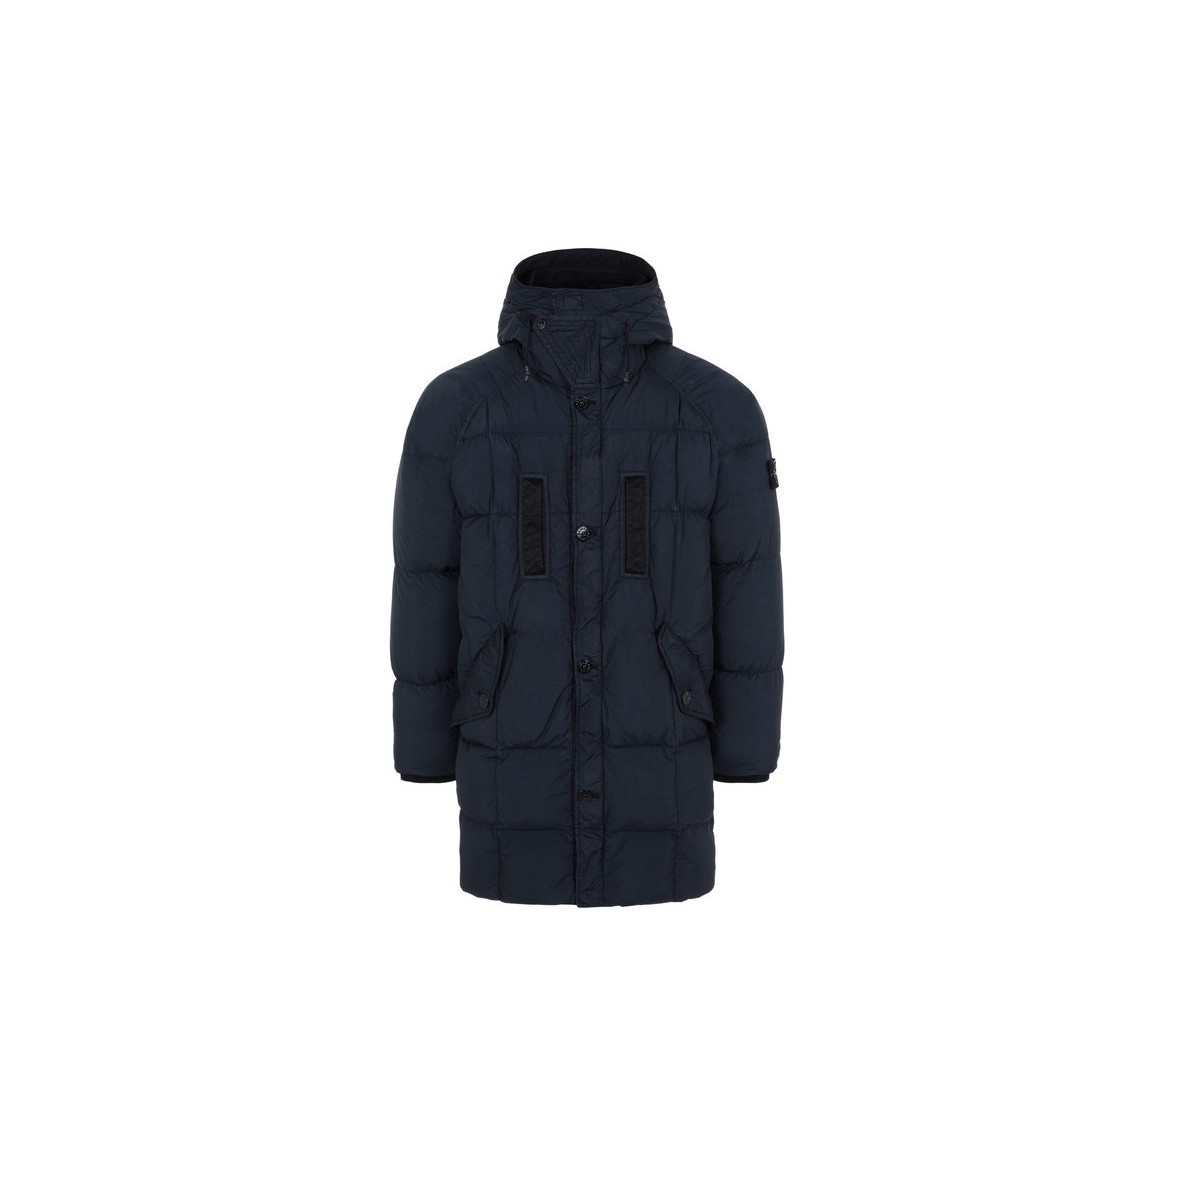 Piumino - 70123 garment dyed crinkle reps ny down